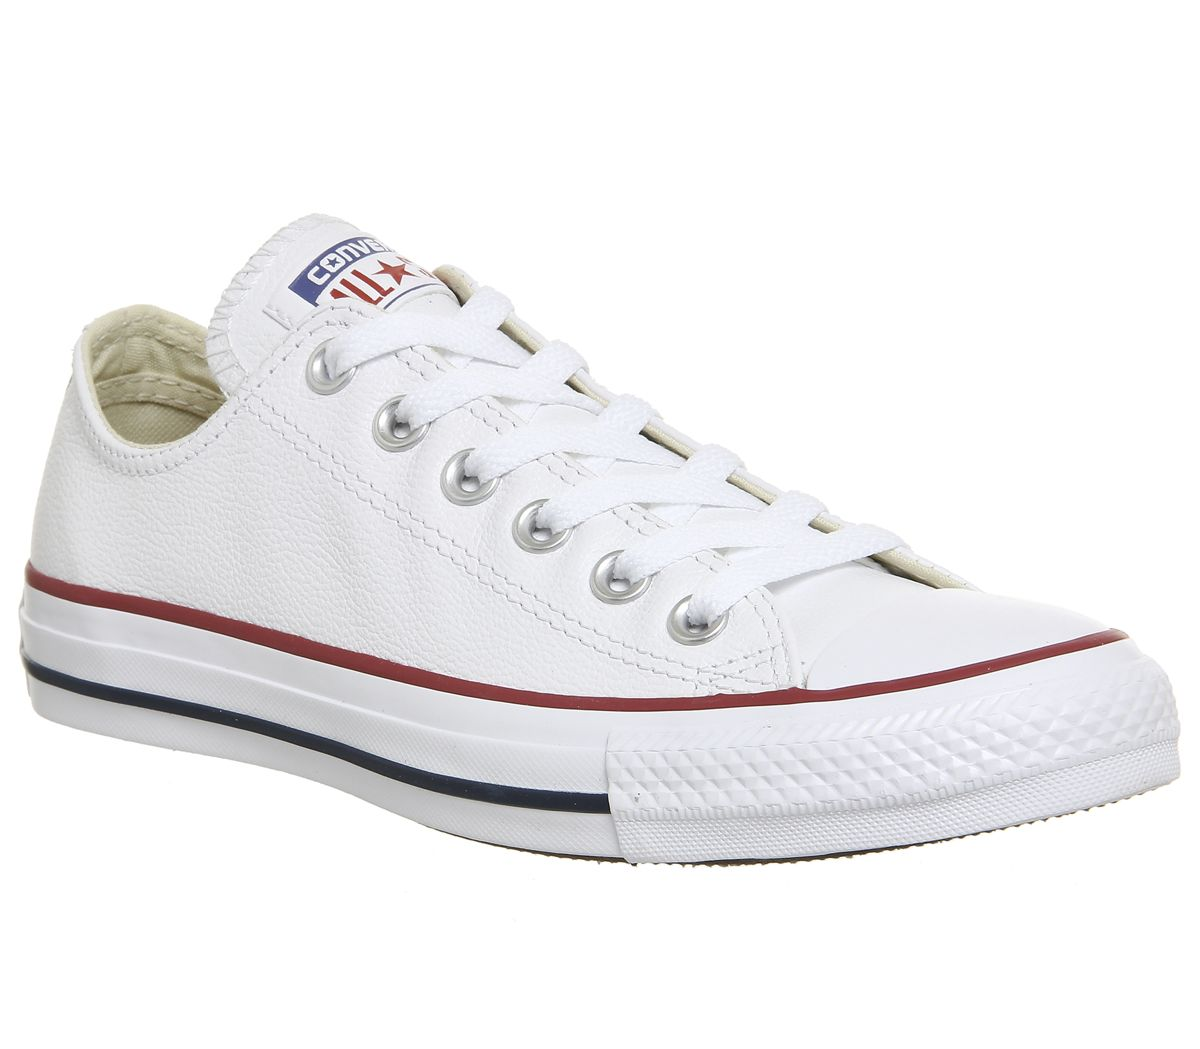 Details about Womens Converse All Star Low Leather Optical White Trainers Shoes